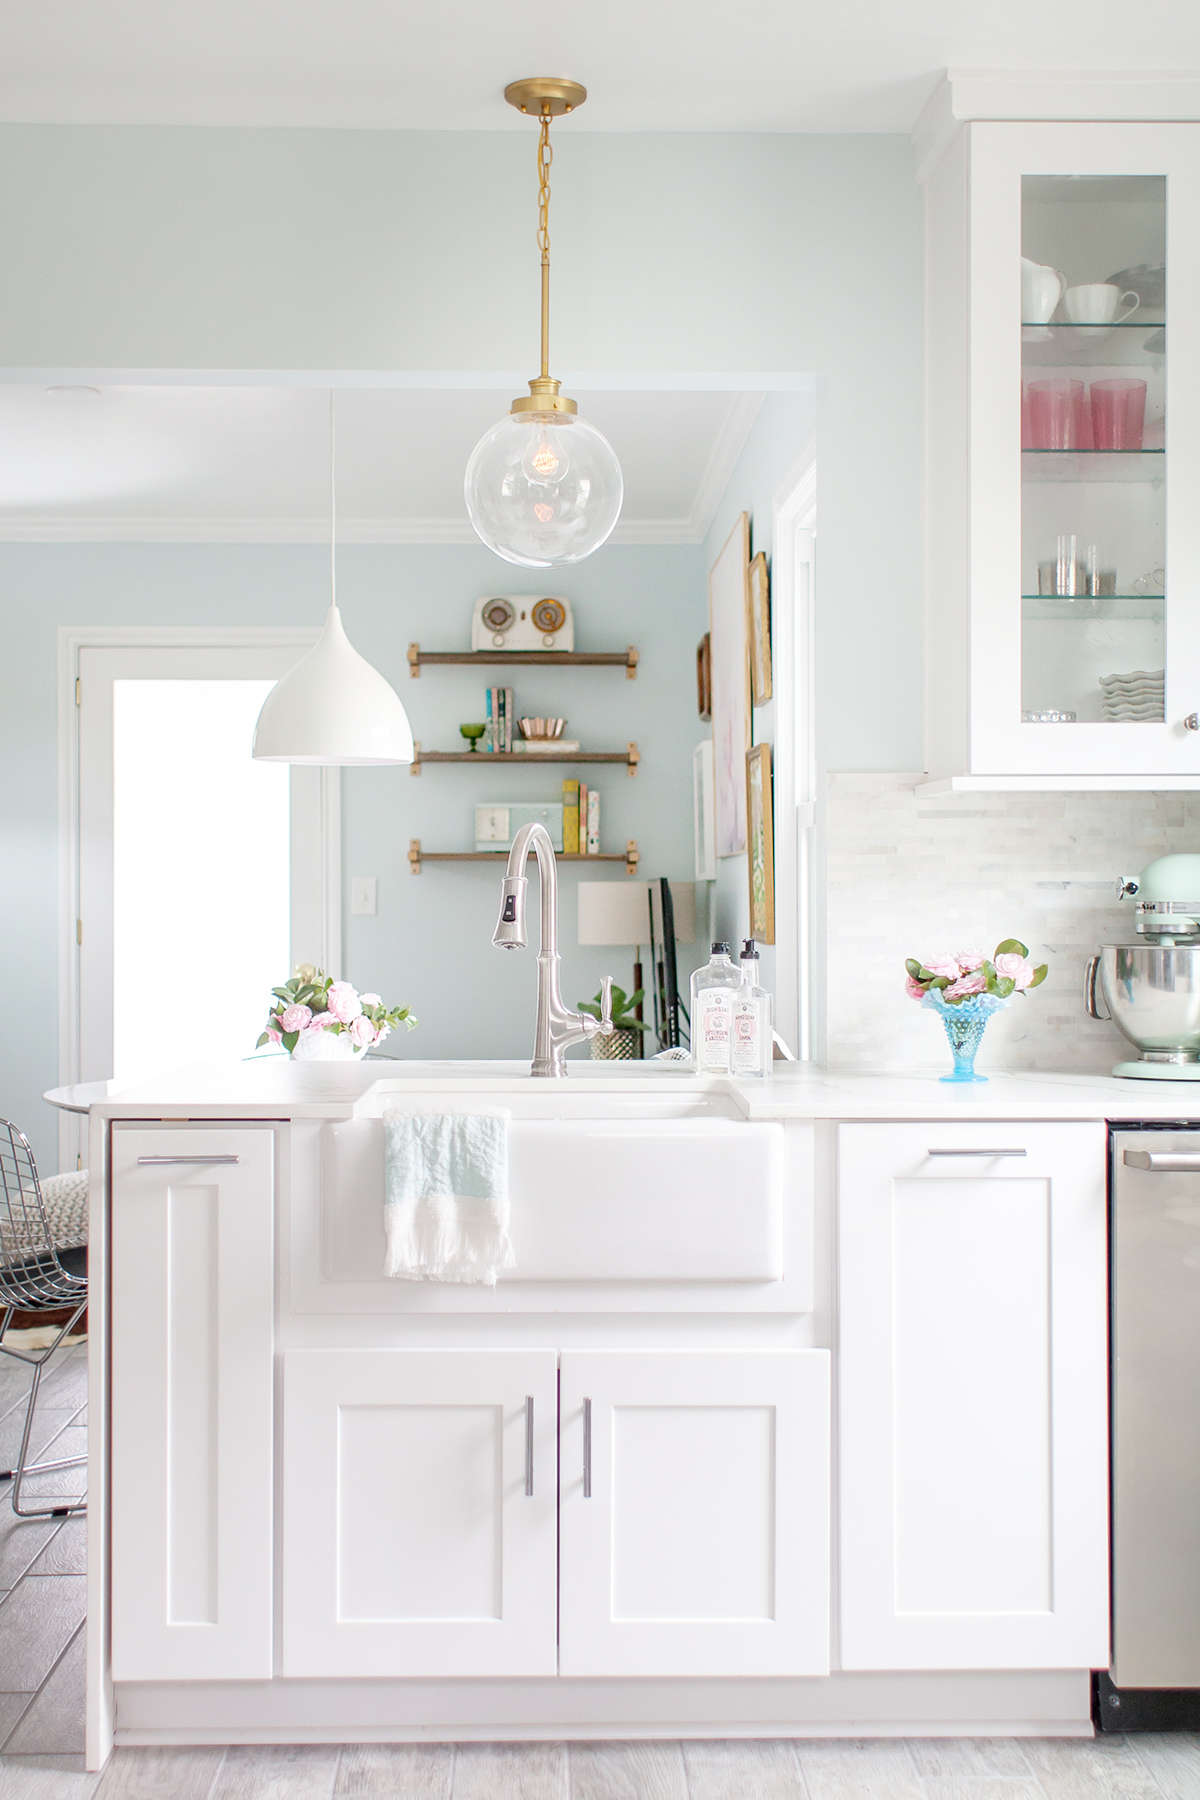 our new kitchen reveal with the home depot home depot kitchen remodel vintage kitchen renovation